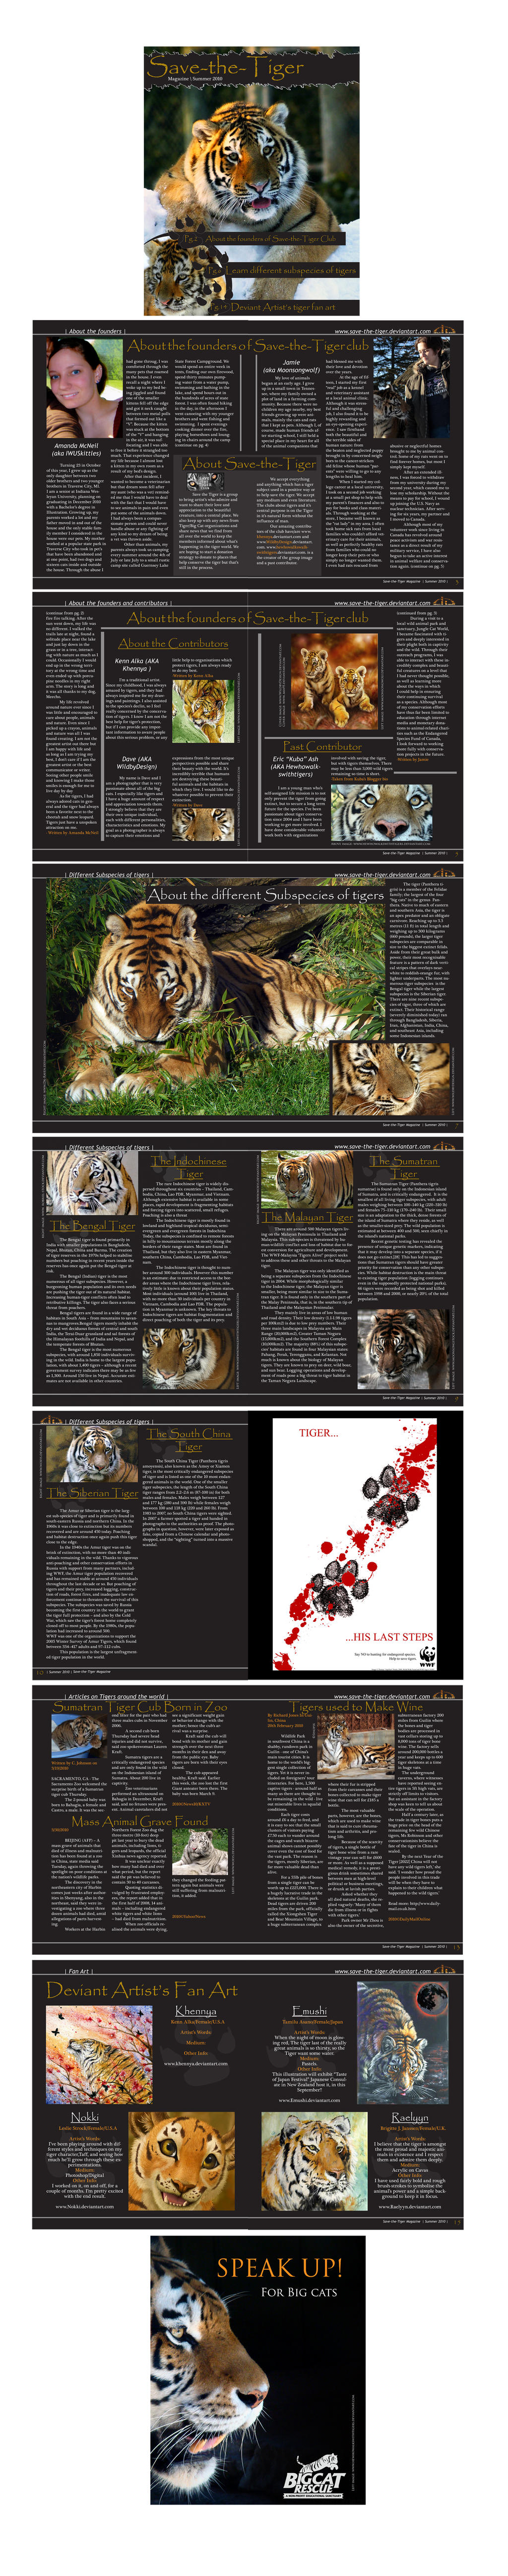 Save the tiger magazine by amandas-sketches